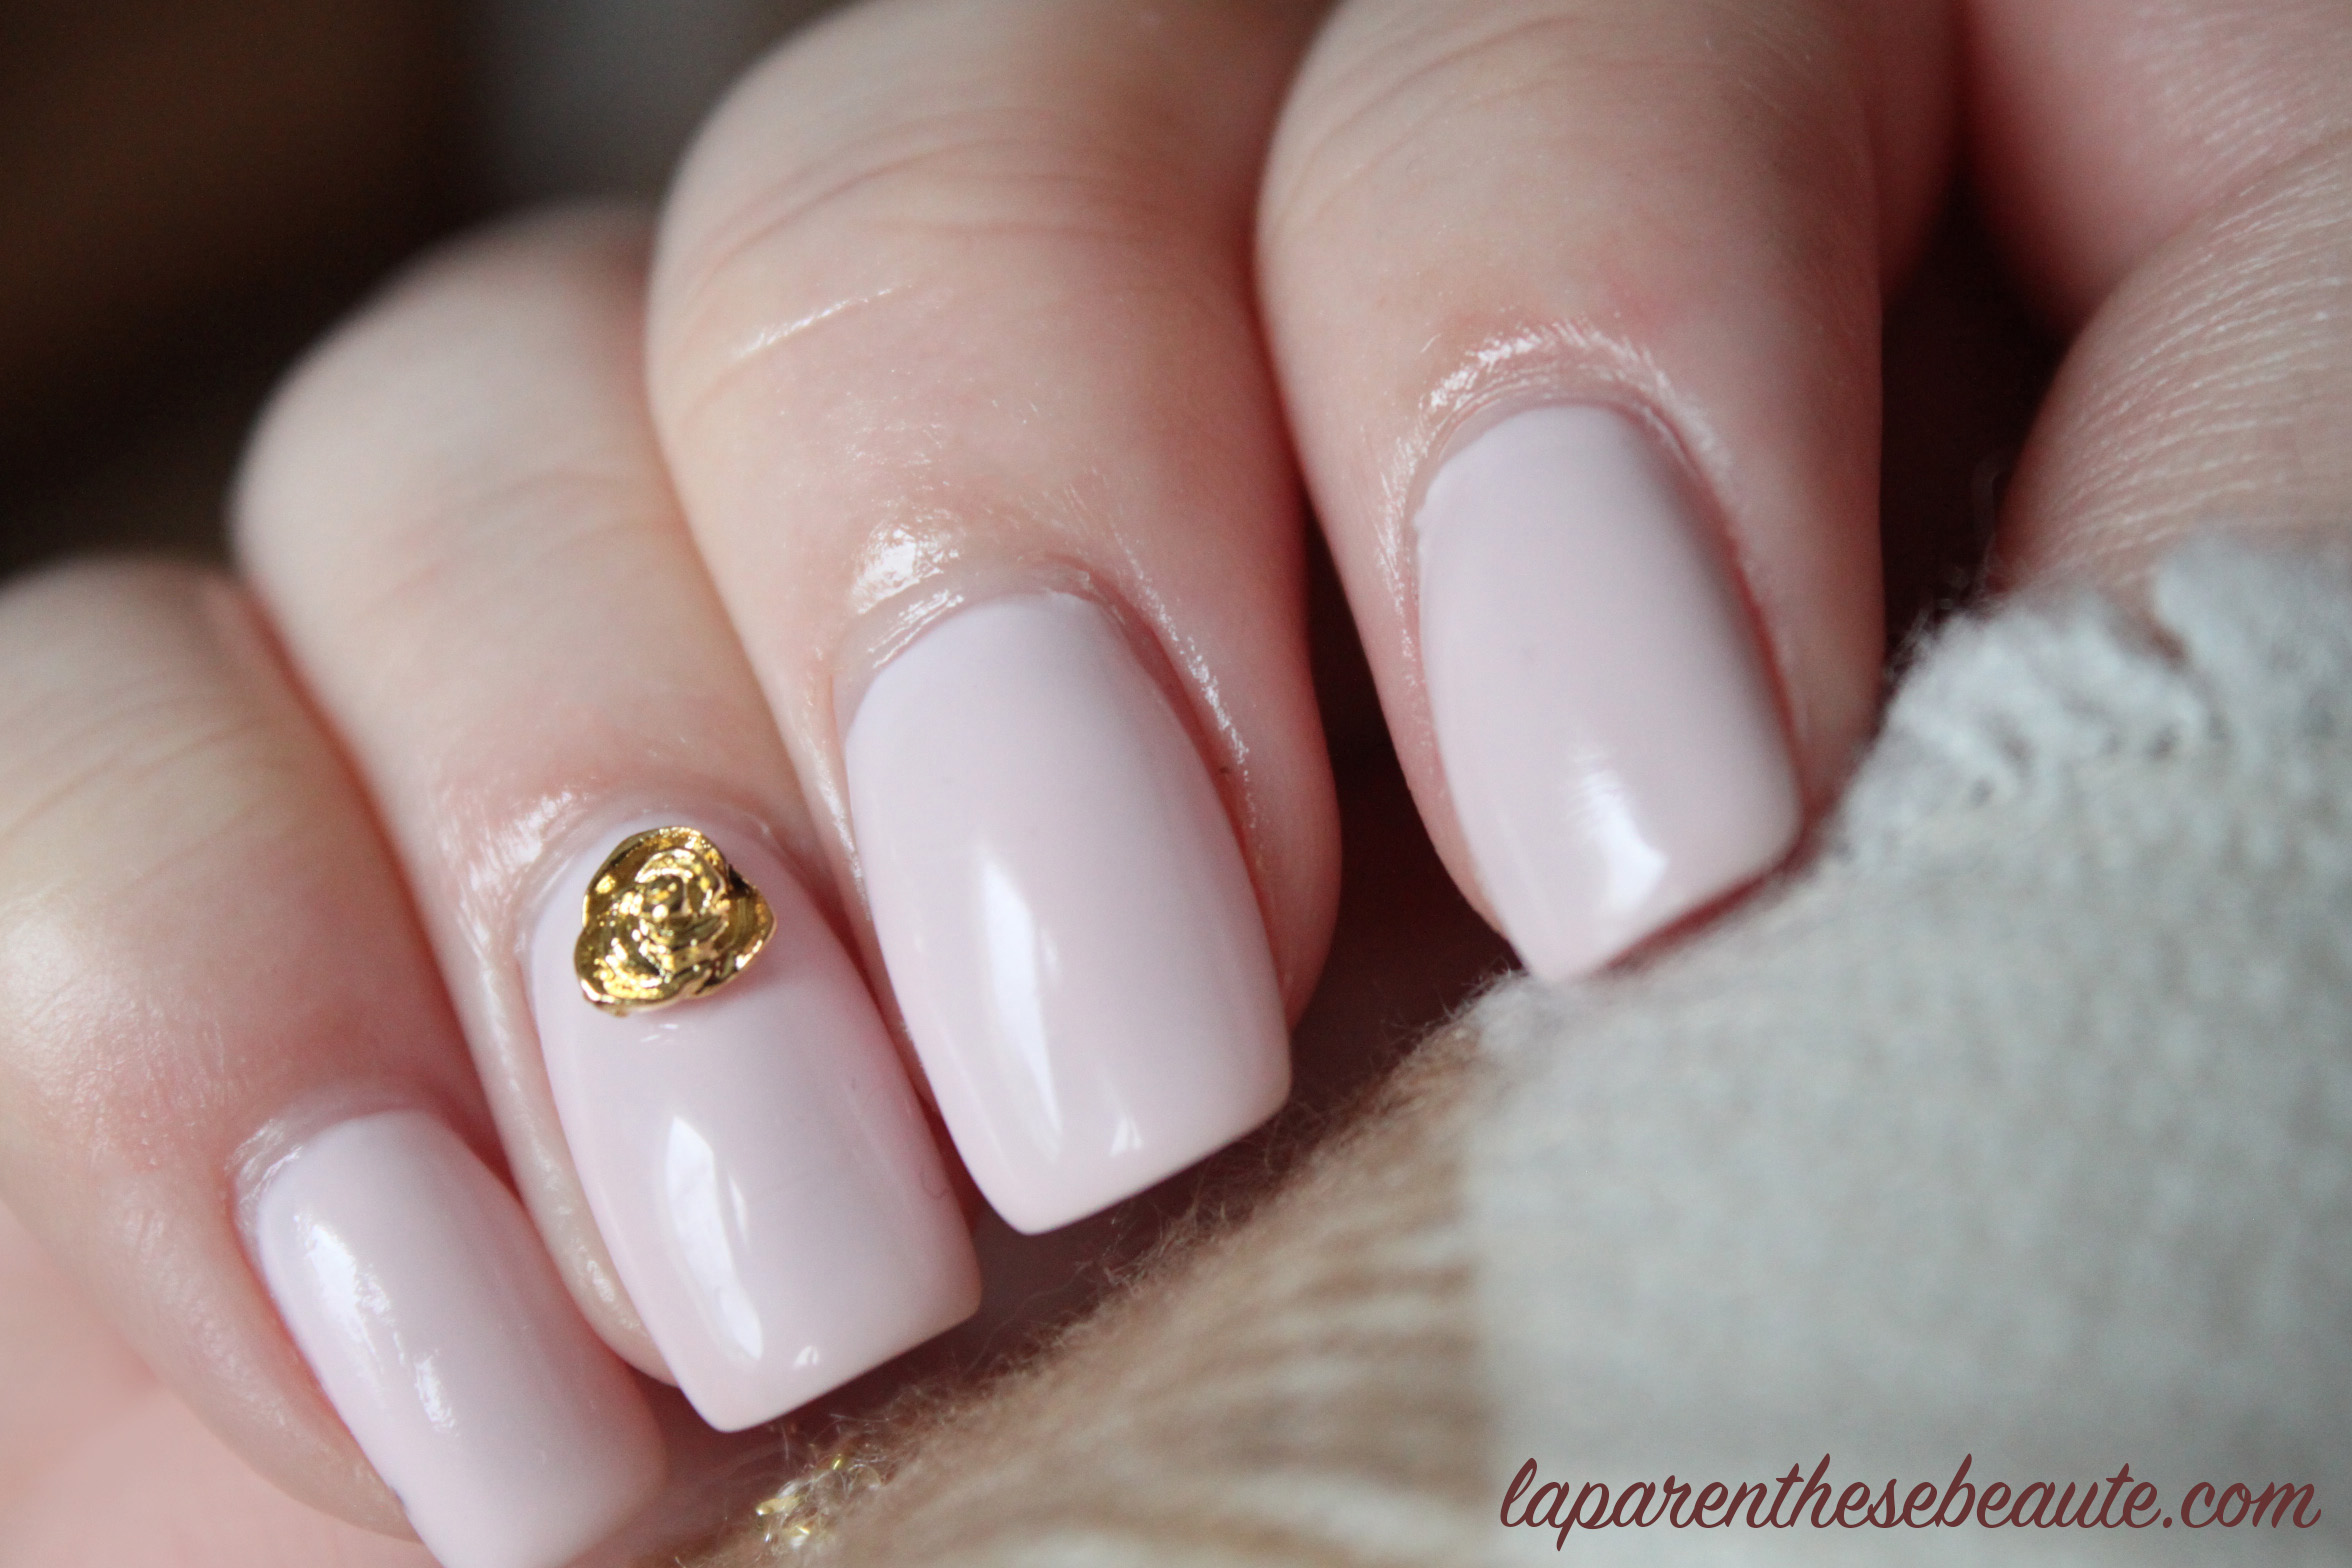 Comment prendre soin de ses ongles apr s une d pose de gella parenth se beaut - Photo ongle gel ...